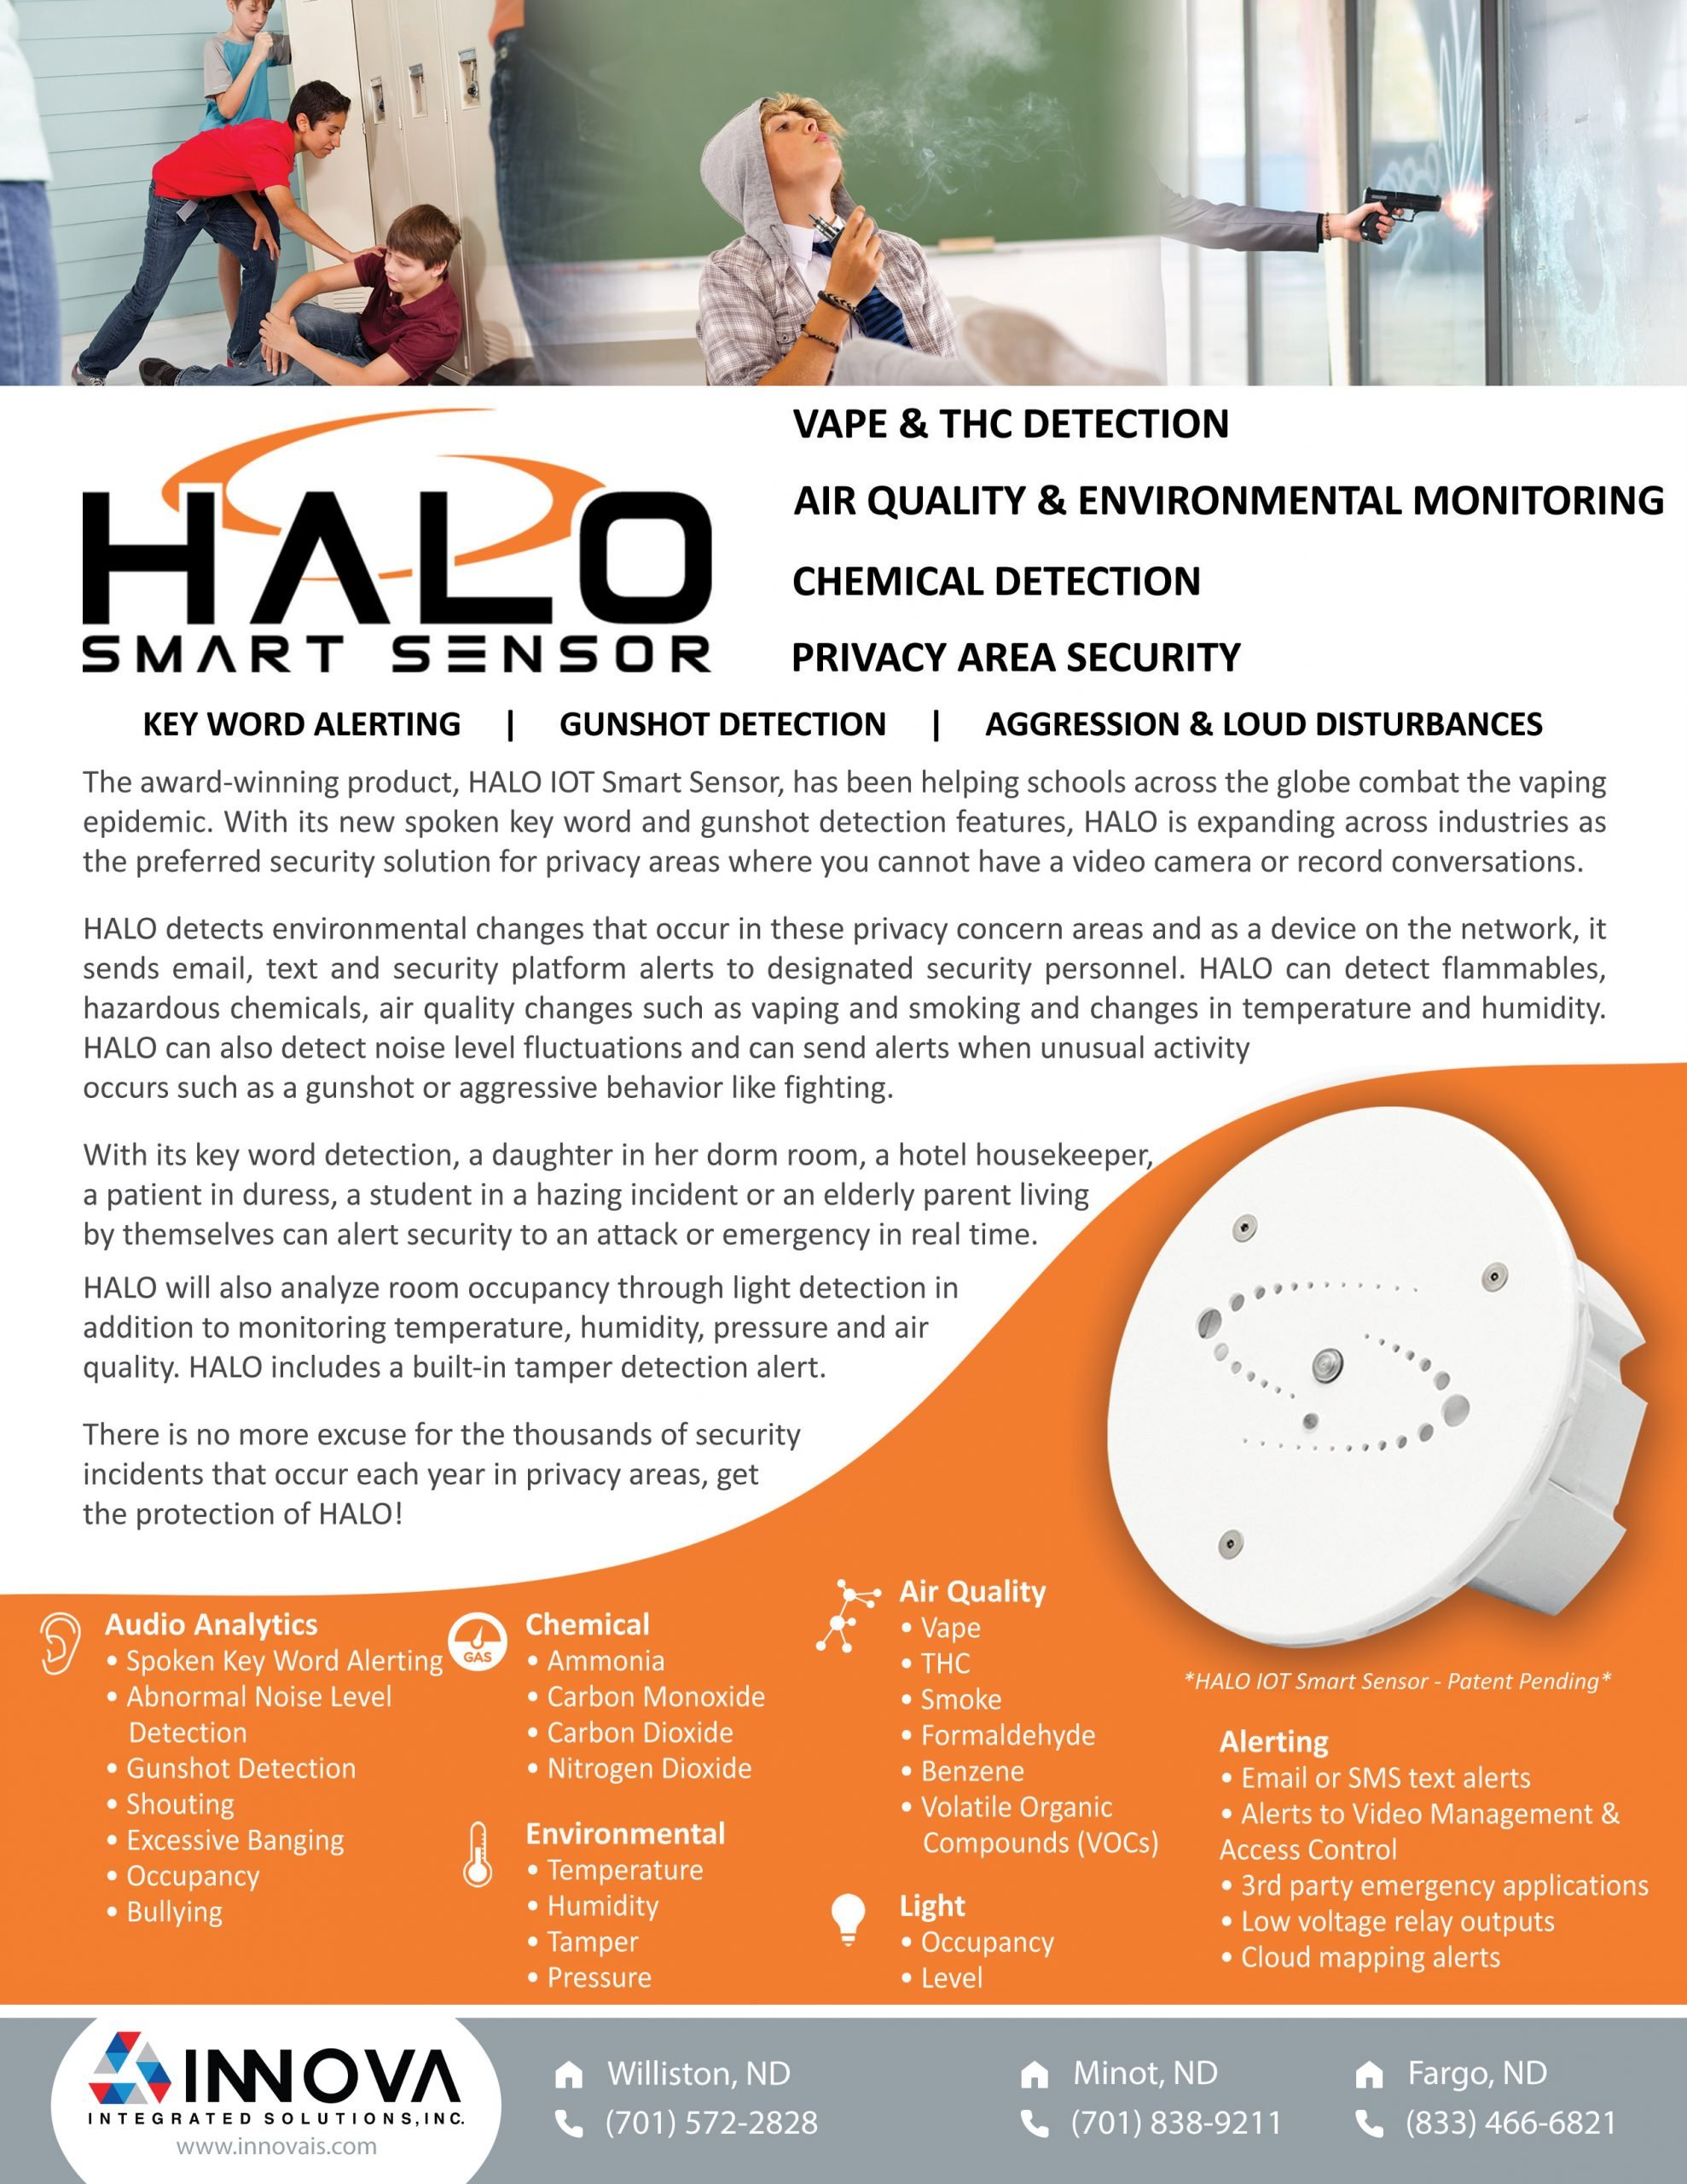 HALO Smart Sensor - Vape Detection & More